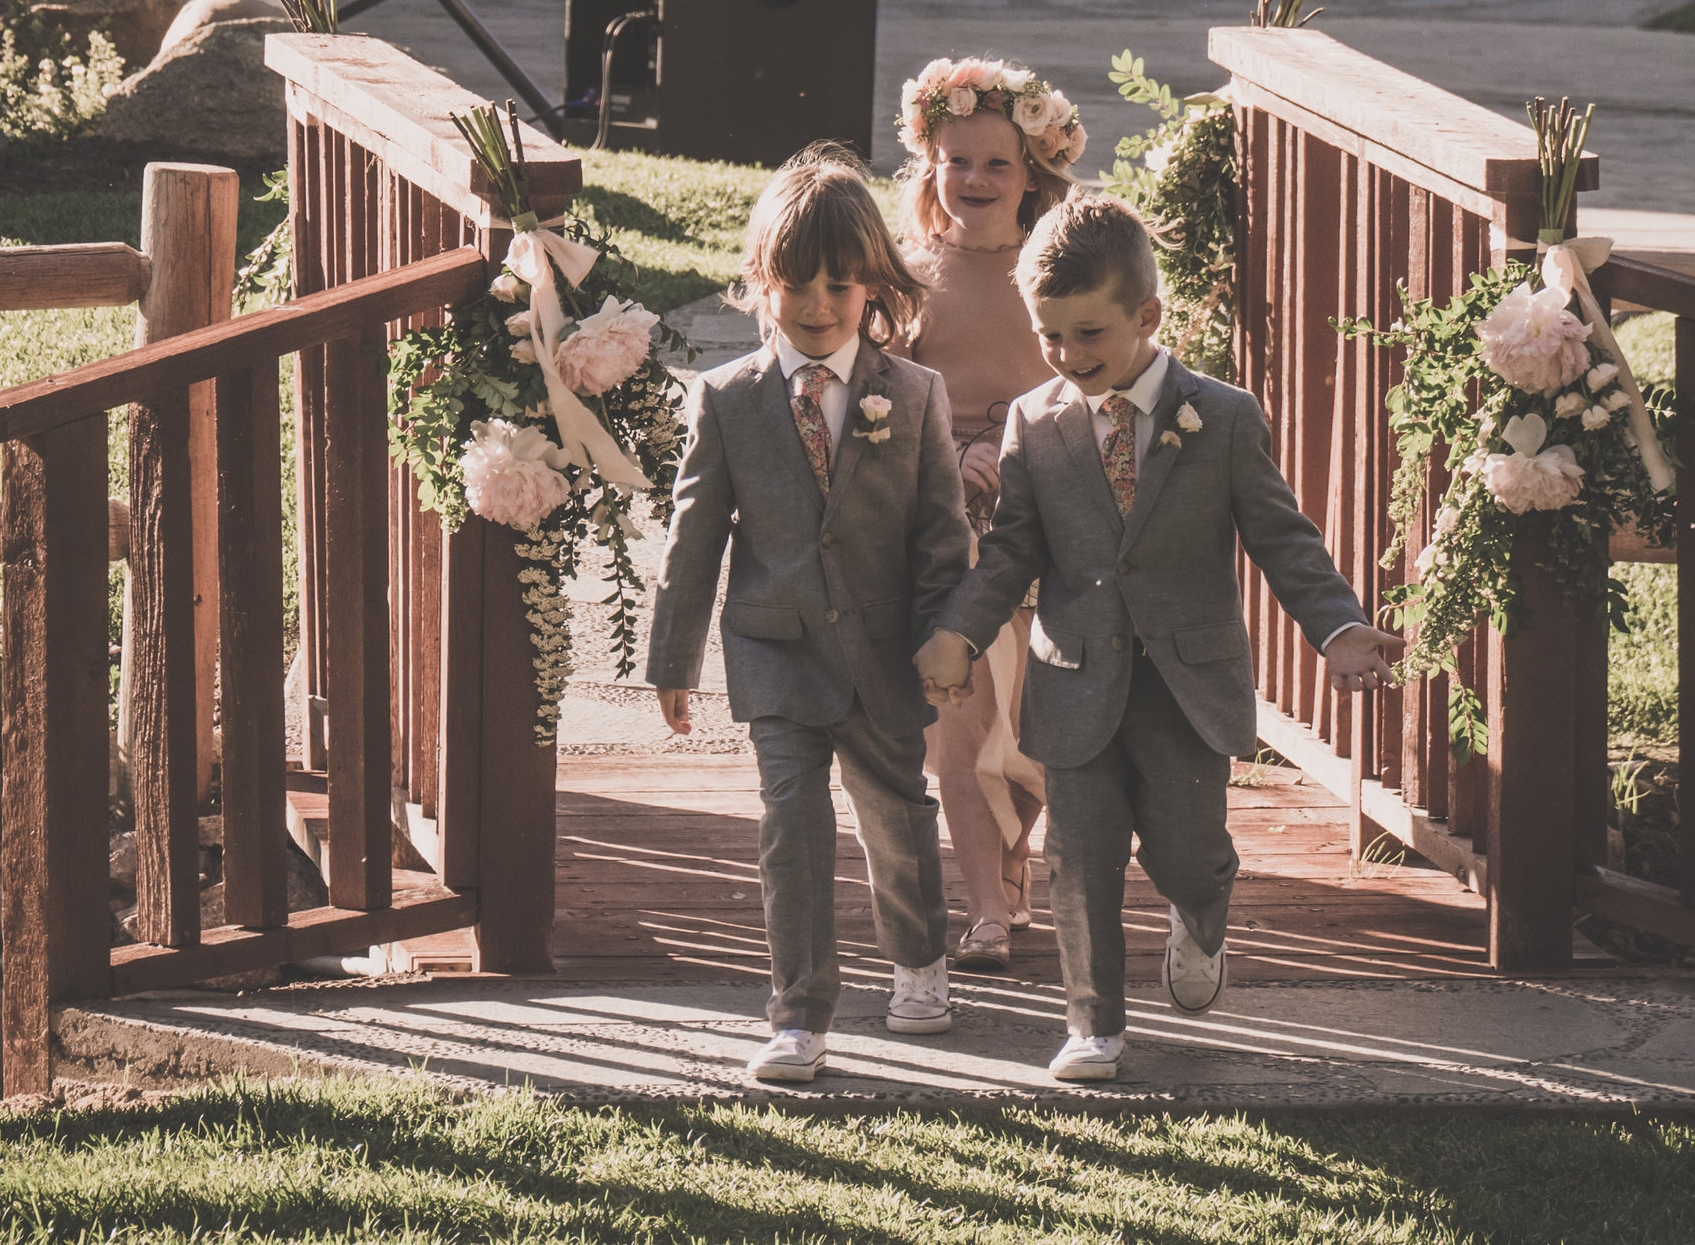 I MAY BE BIAS BUT, CUTEST WEDDING KIDS EVER!!!